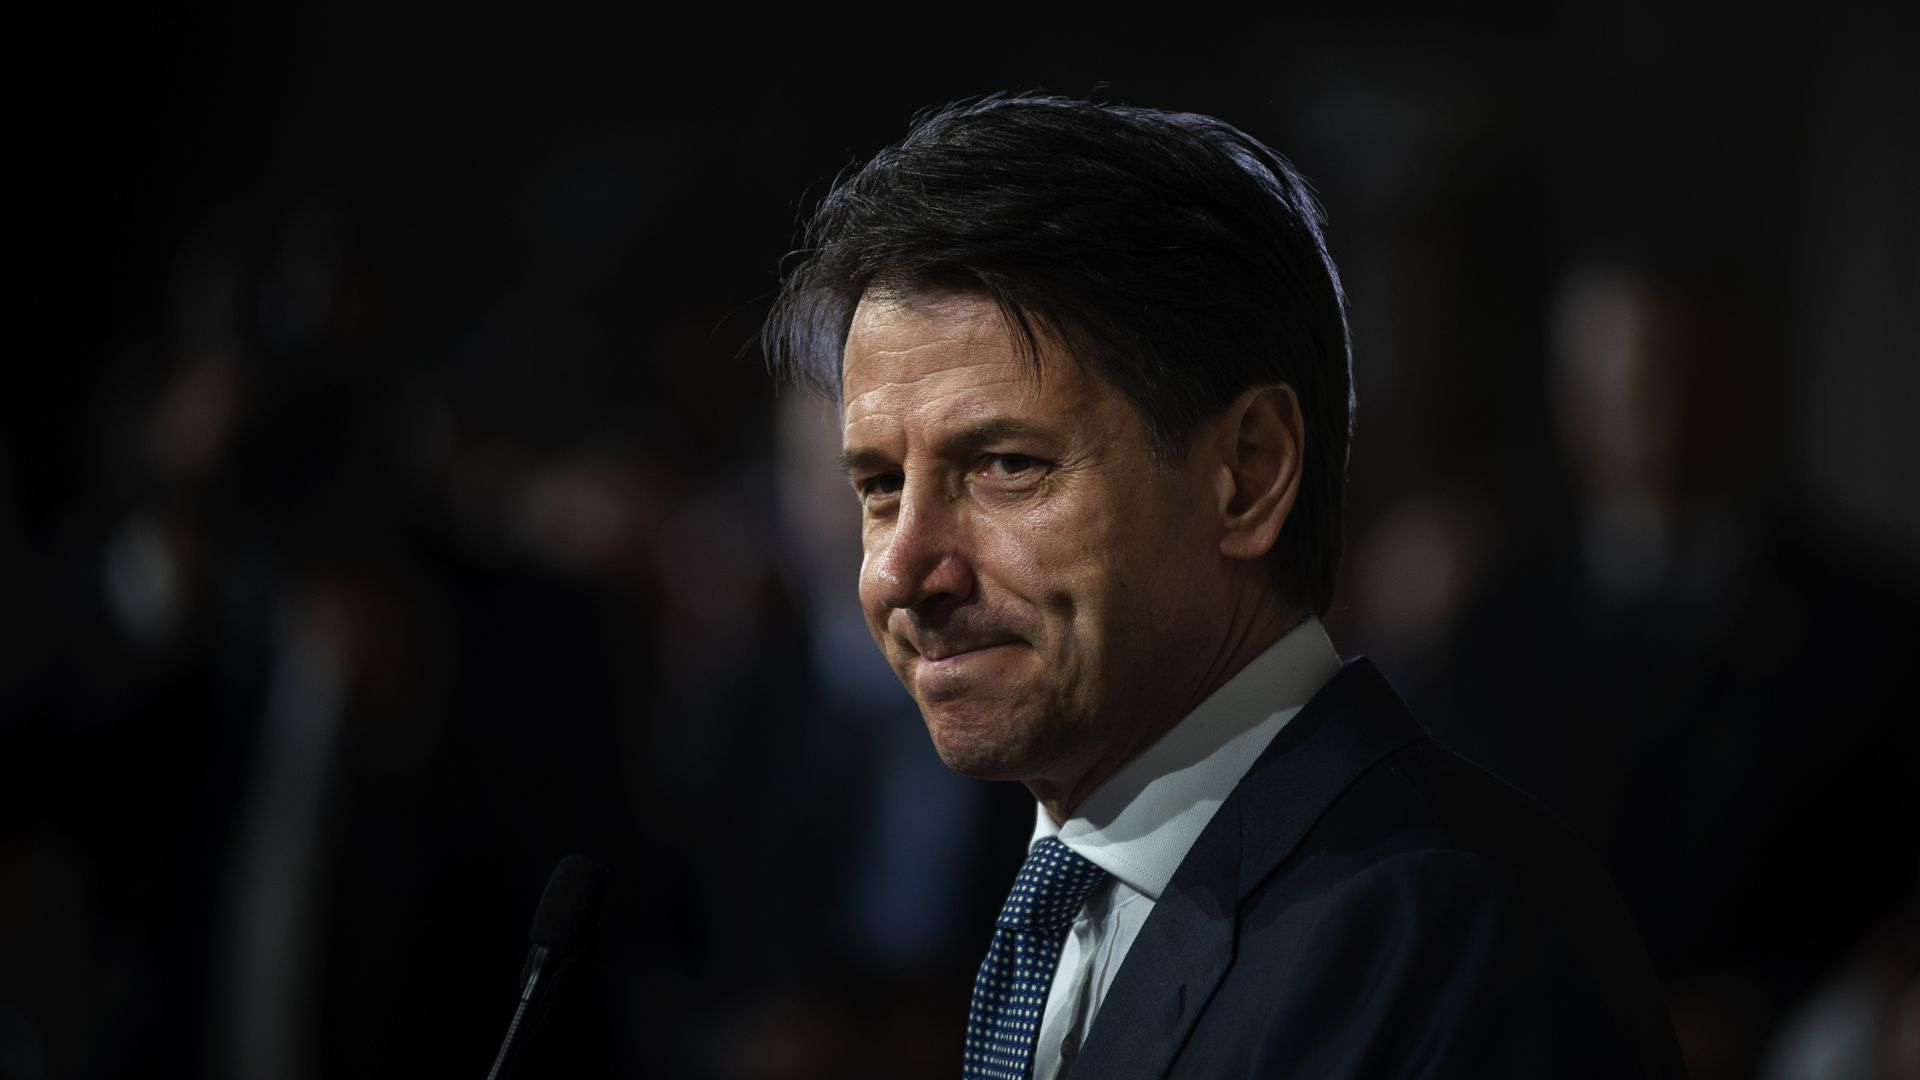 Giuseppe Conte, Italy's new prime minister designate, speaks to the press after being appointed